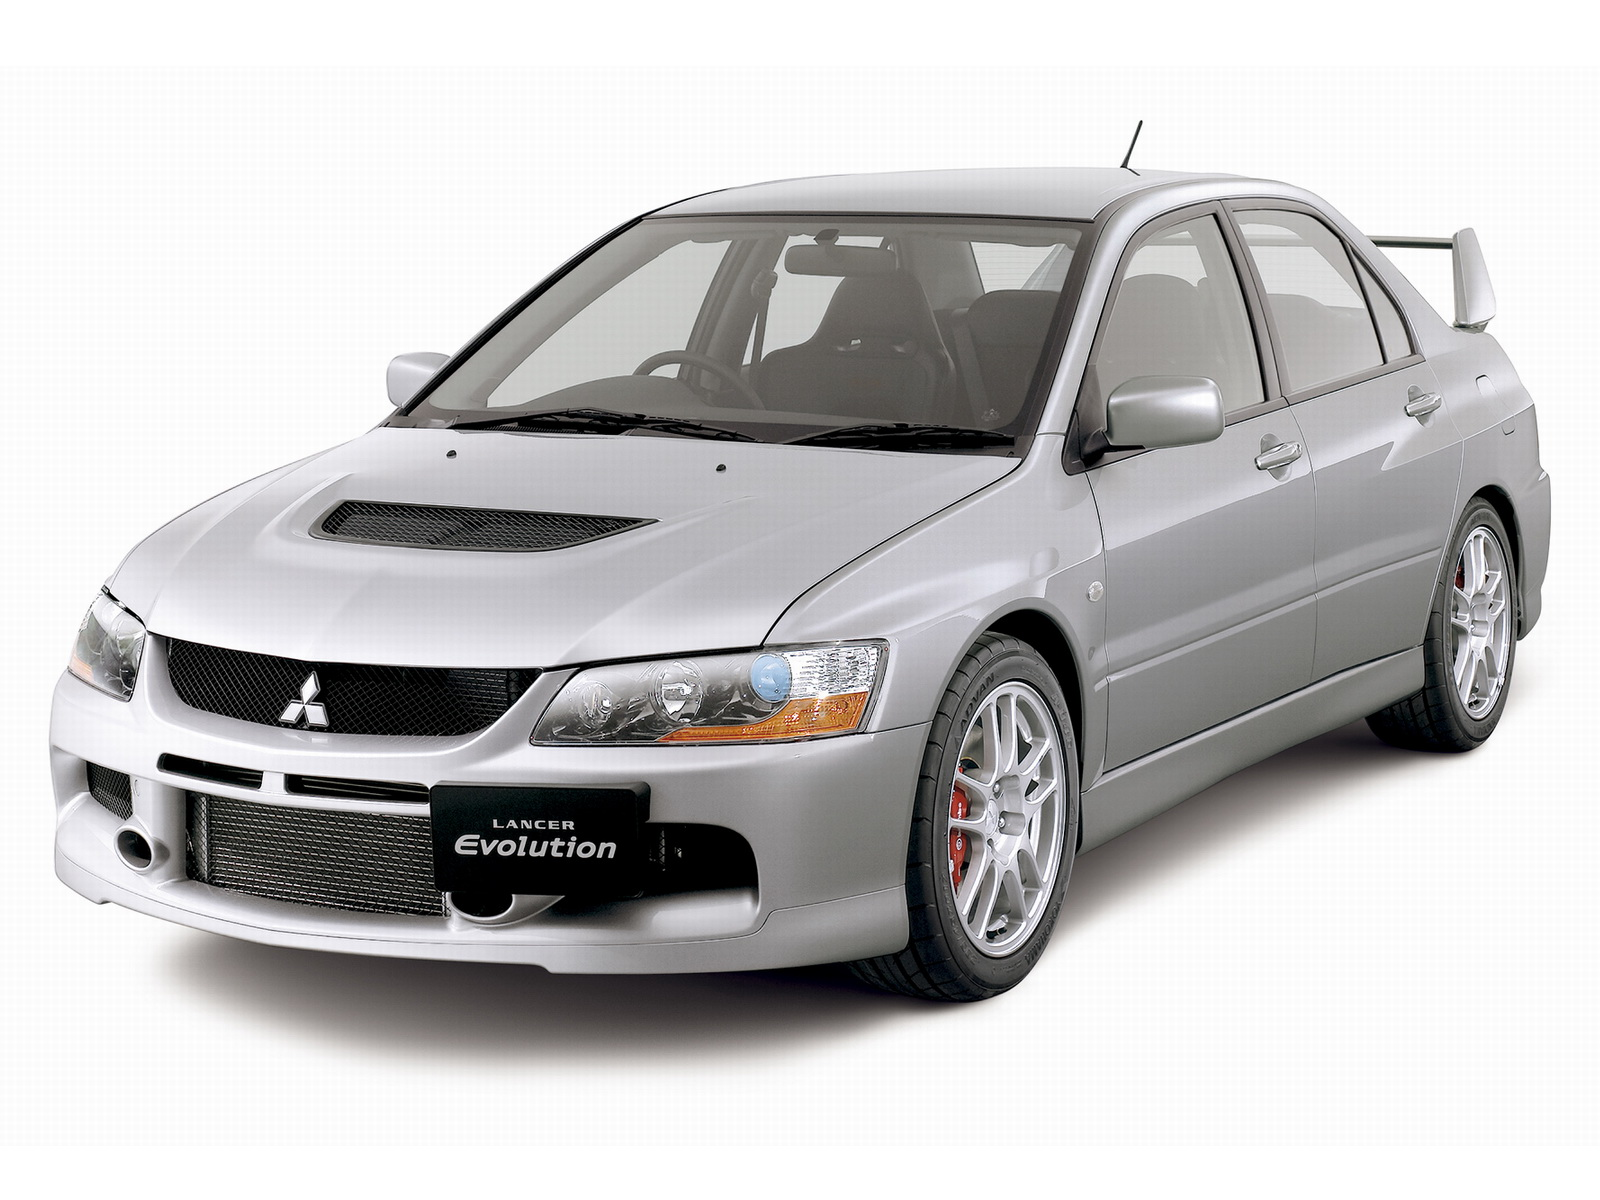 MITSUBISHI lancer evo Tuning High Resolution Wallpaper Free Wallpaper